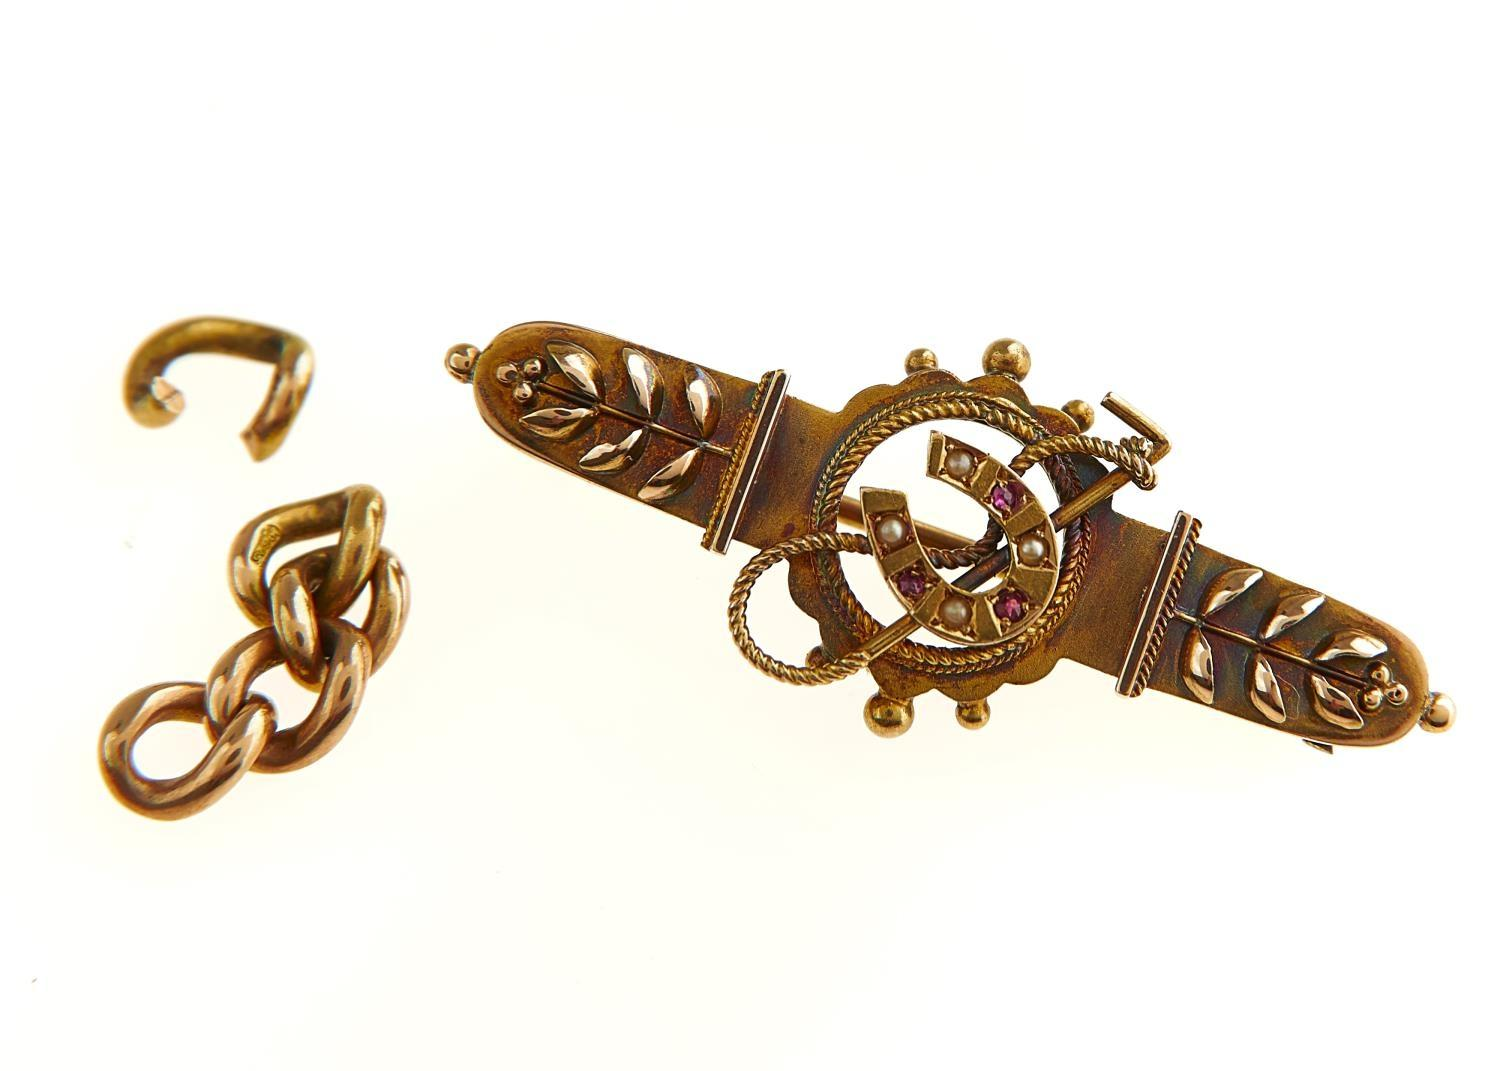 A VICTORIAN RUBY, SPLIT PEARL AND 15CT GOLD BAR BROOCH, 40MM L, CHESTER 1895 AND A SMALL PIECE OF